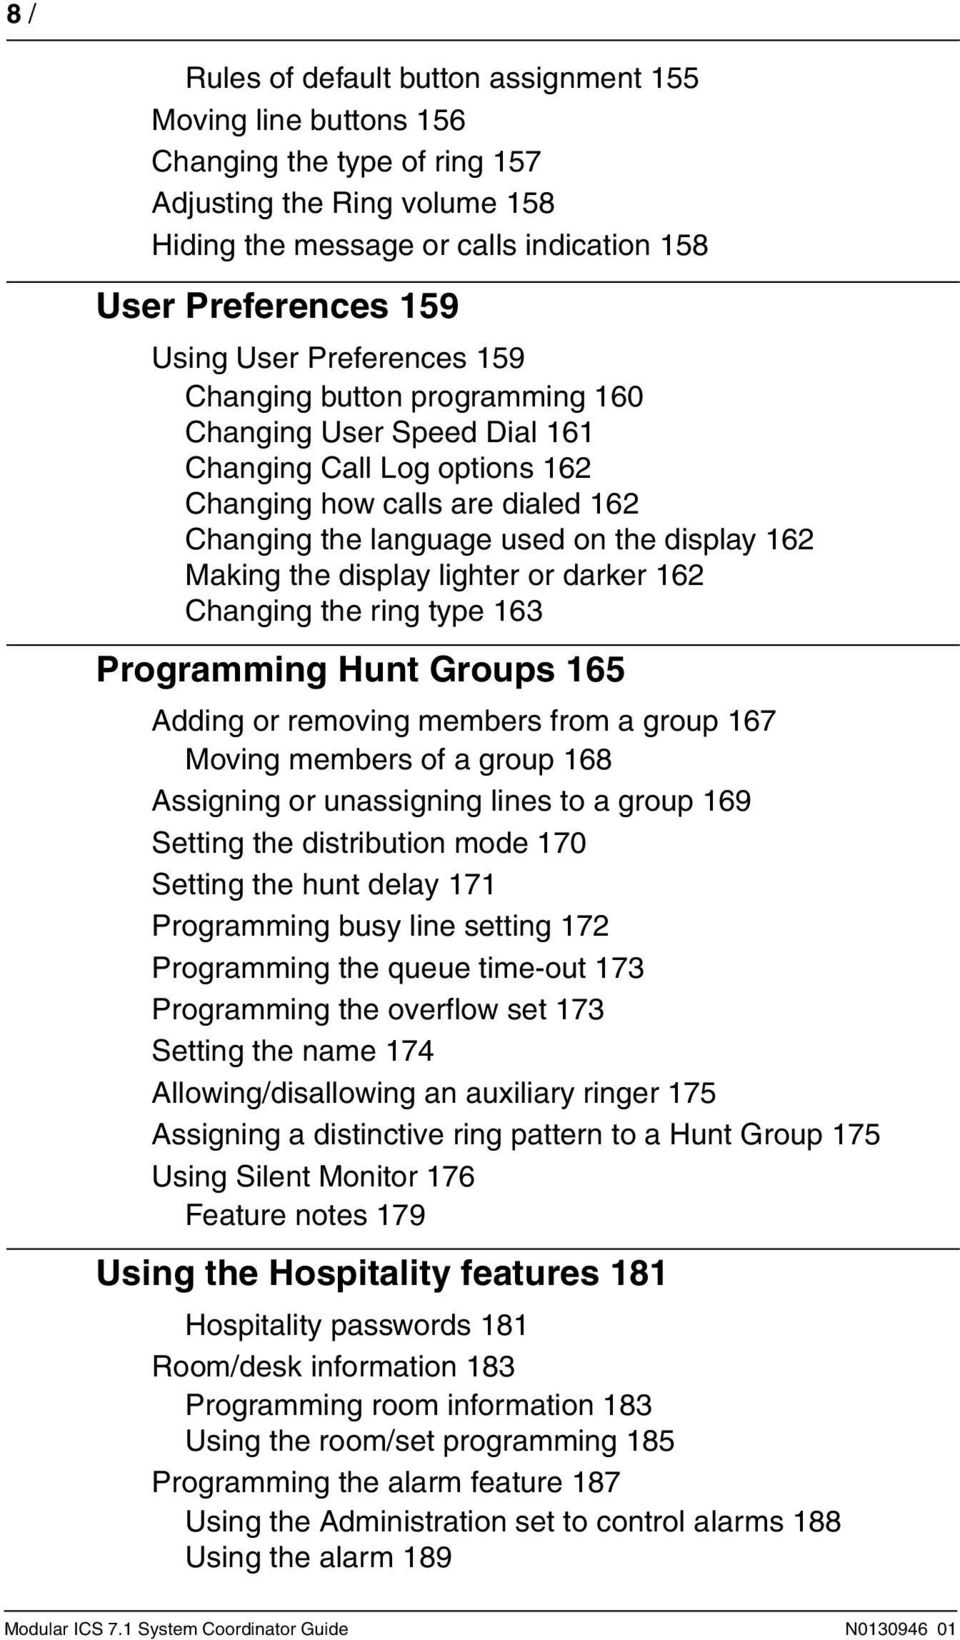 the display lighter or darker 162 Changing the ring type 163 Programming Hunt Groups 165 Adding or removing members from a group 167 Moving members of a group 168 Assigning or unassigning lines to a